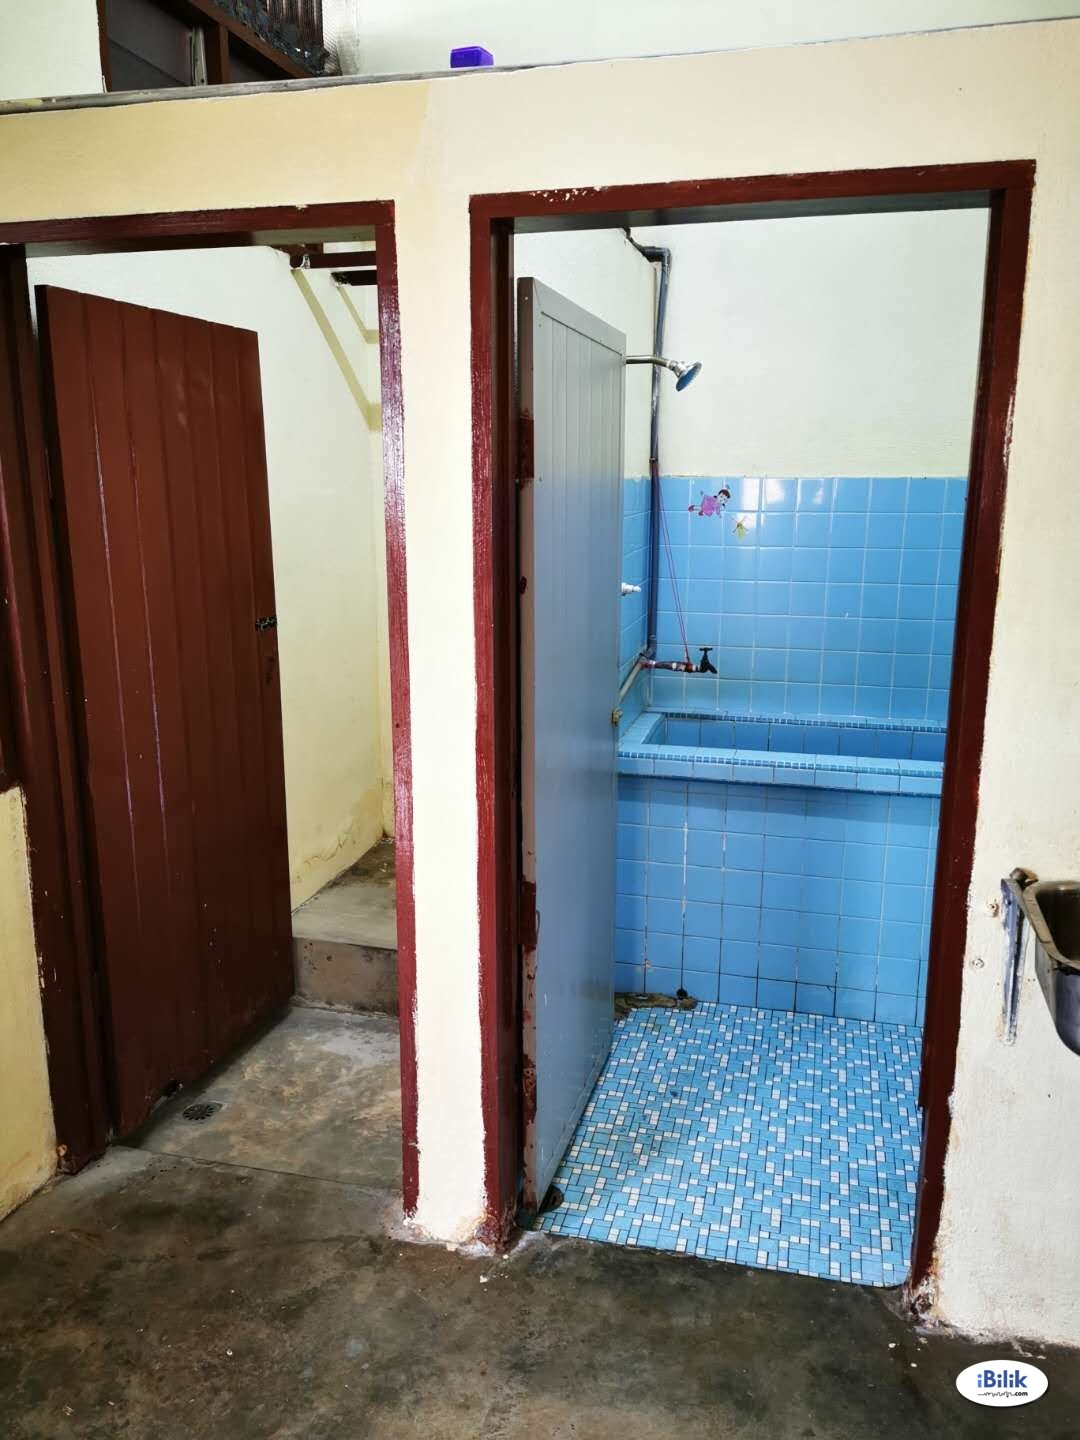 ASTON ROAD MASTER ROOM TO RENT NEAR JIT SIN HIGH SCHOOL AND BM PLAZA AVAILABLE IMMEDIATELY.